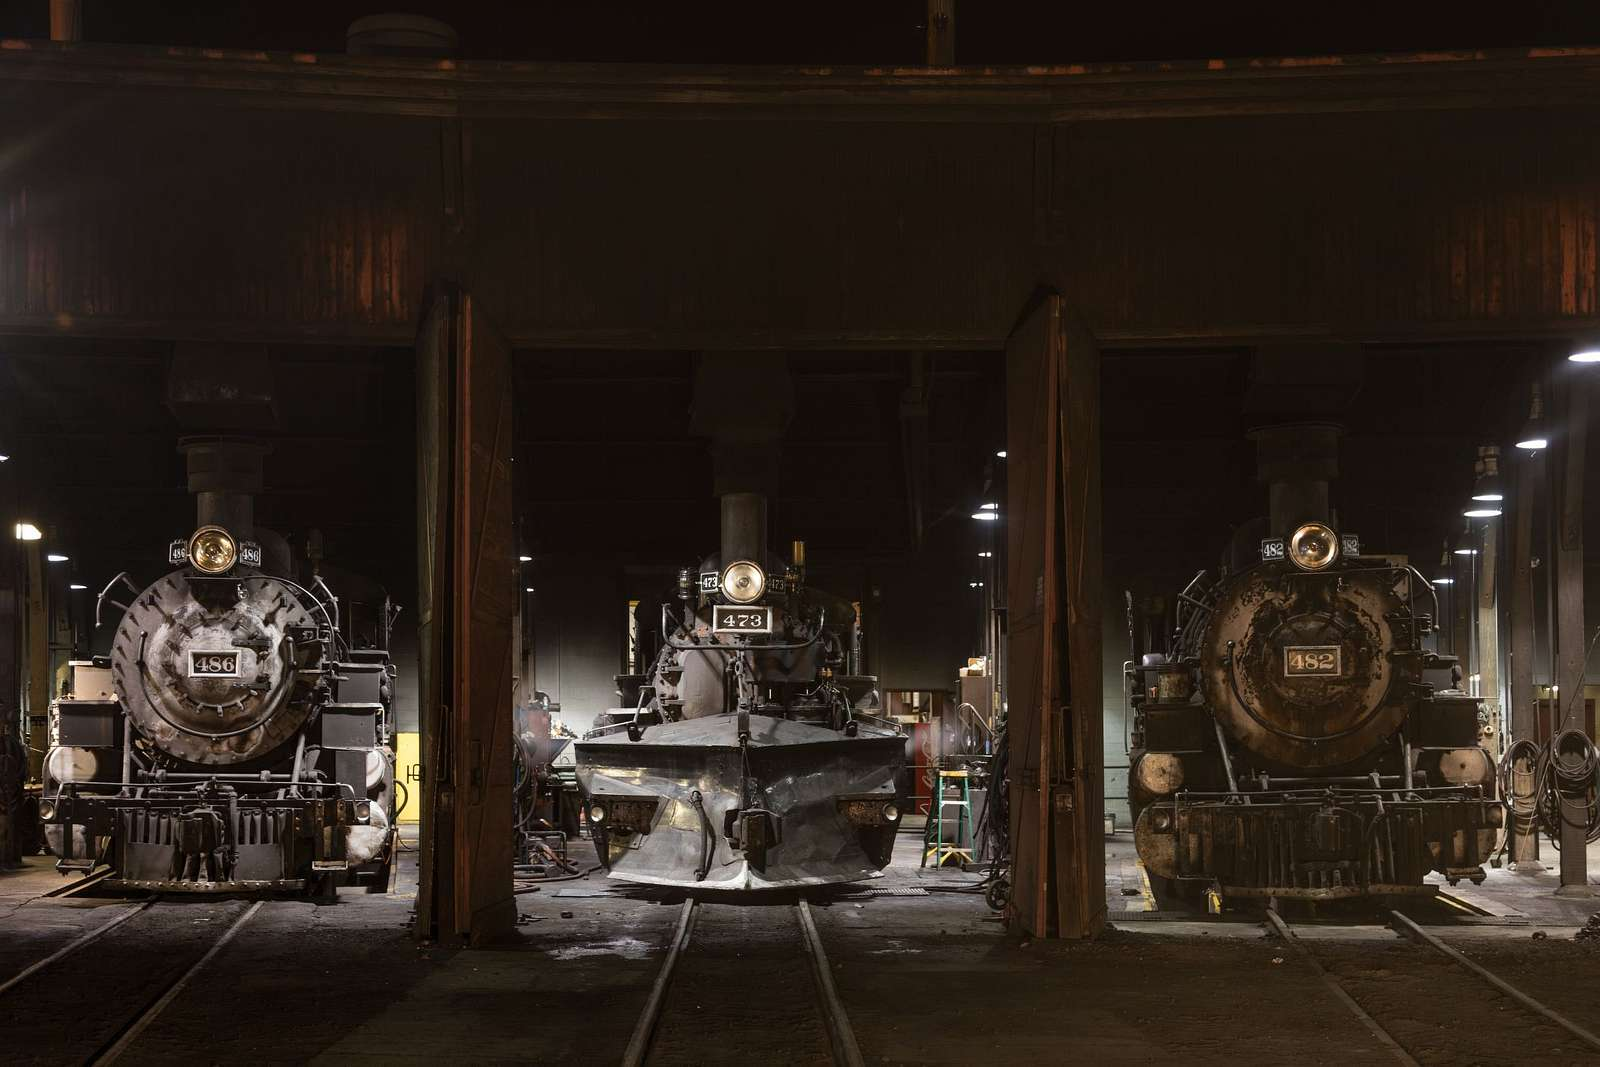 Steam locomotives in the roundhouse of the Durango & Silverton Narrow Gauge Scenic Railroad in Durango, Colorado